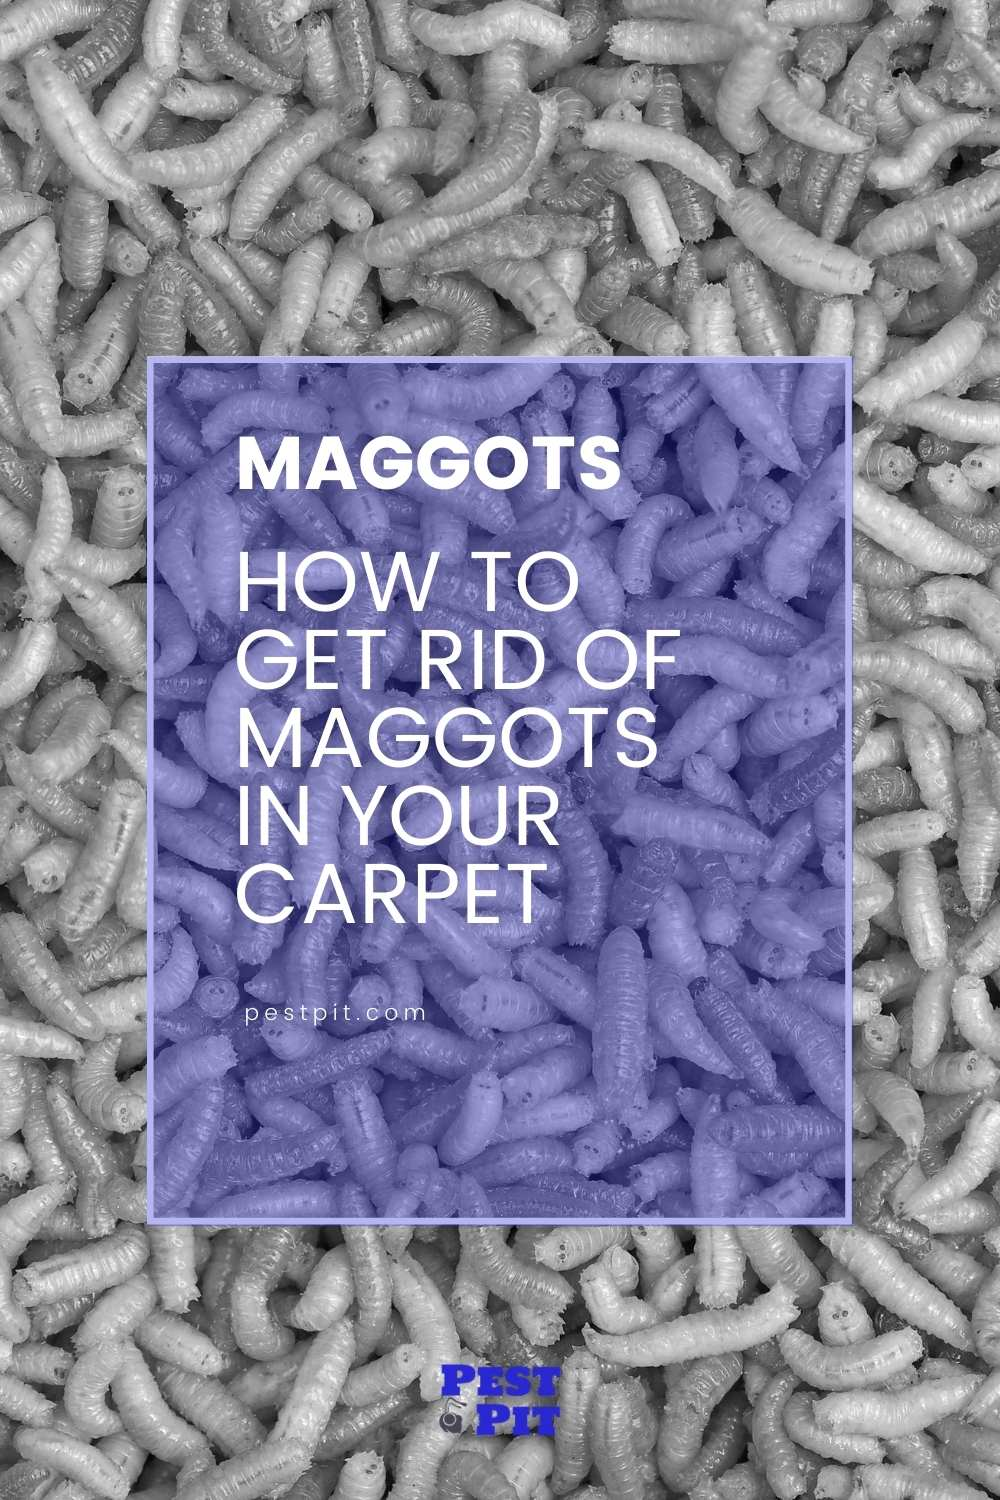 How To Get Rid Of Maggots In Your Carpet